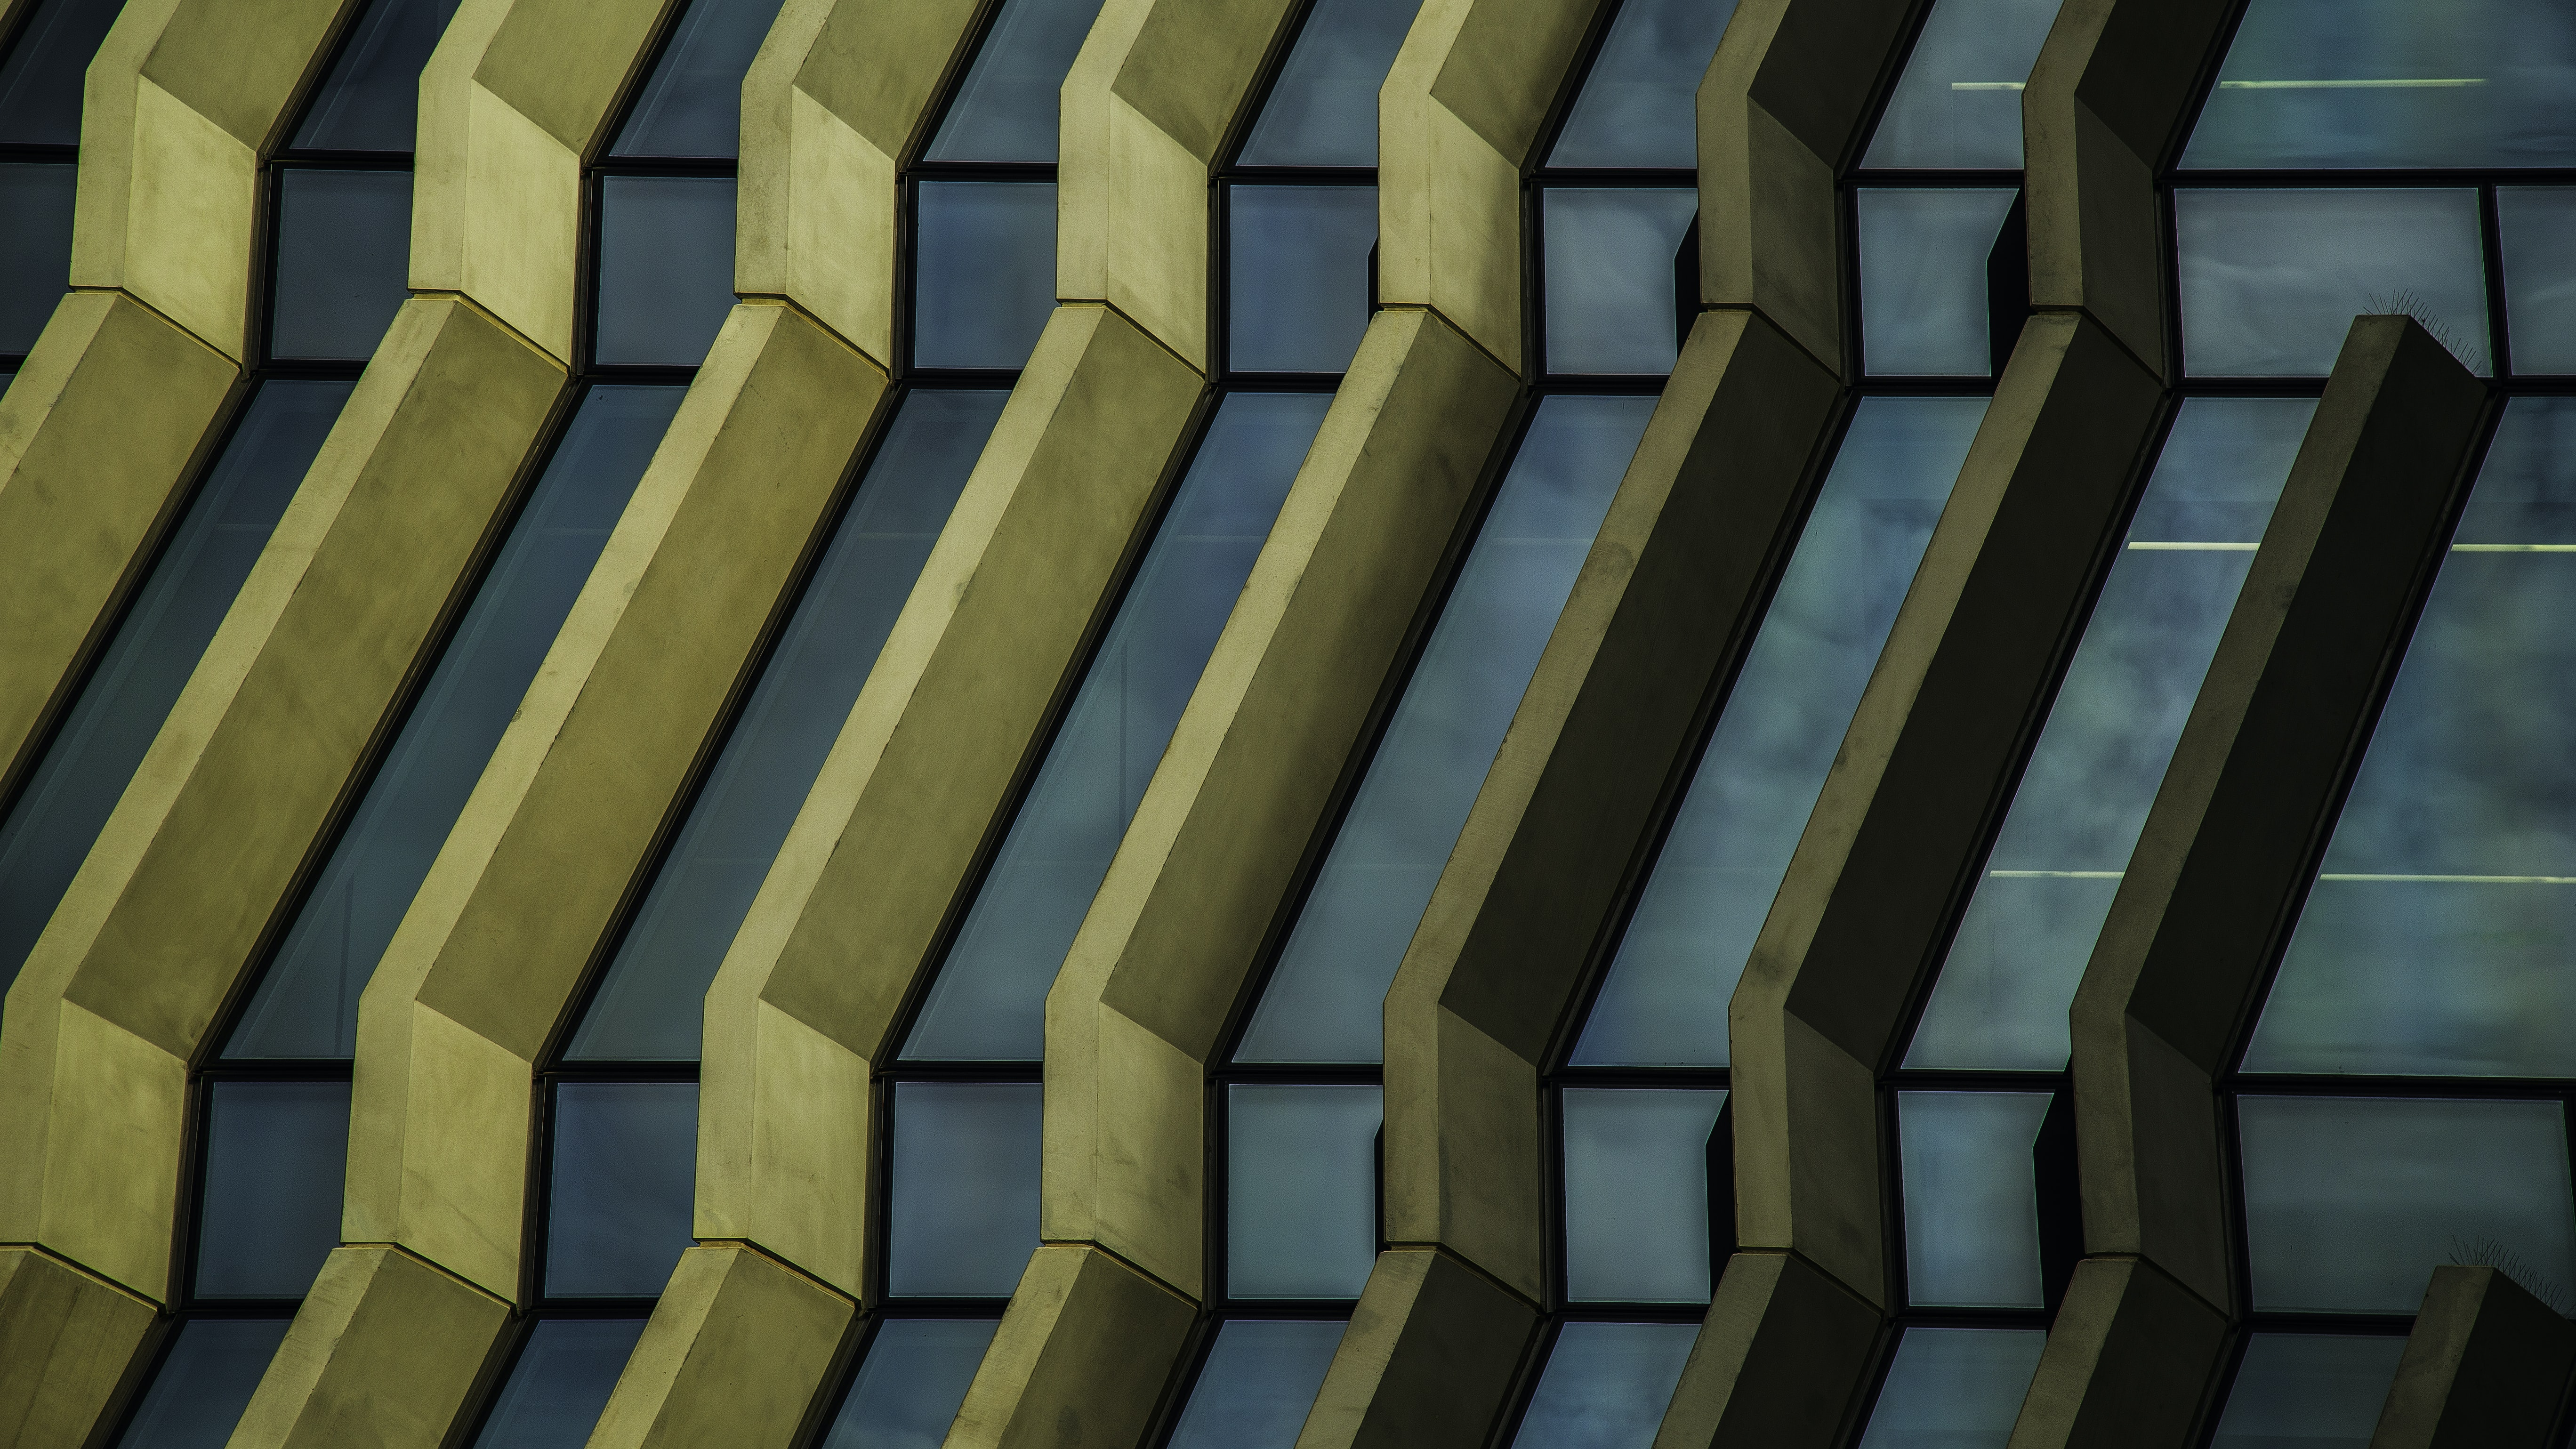 Yellow ribs in a blue building facade